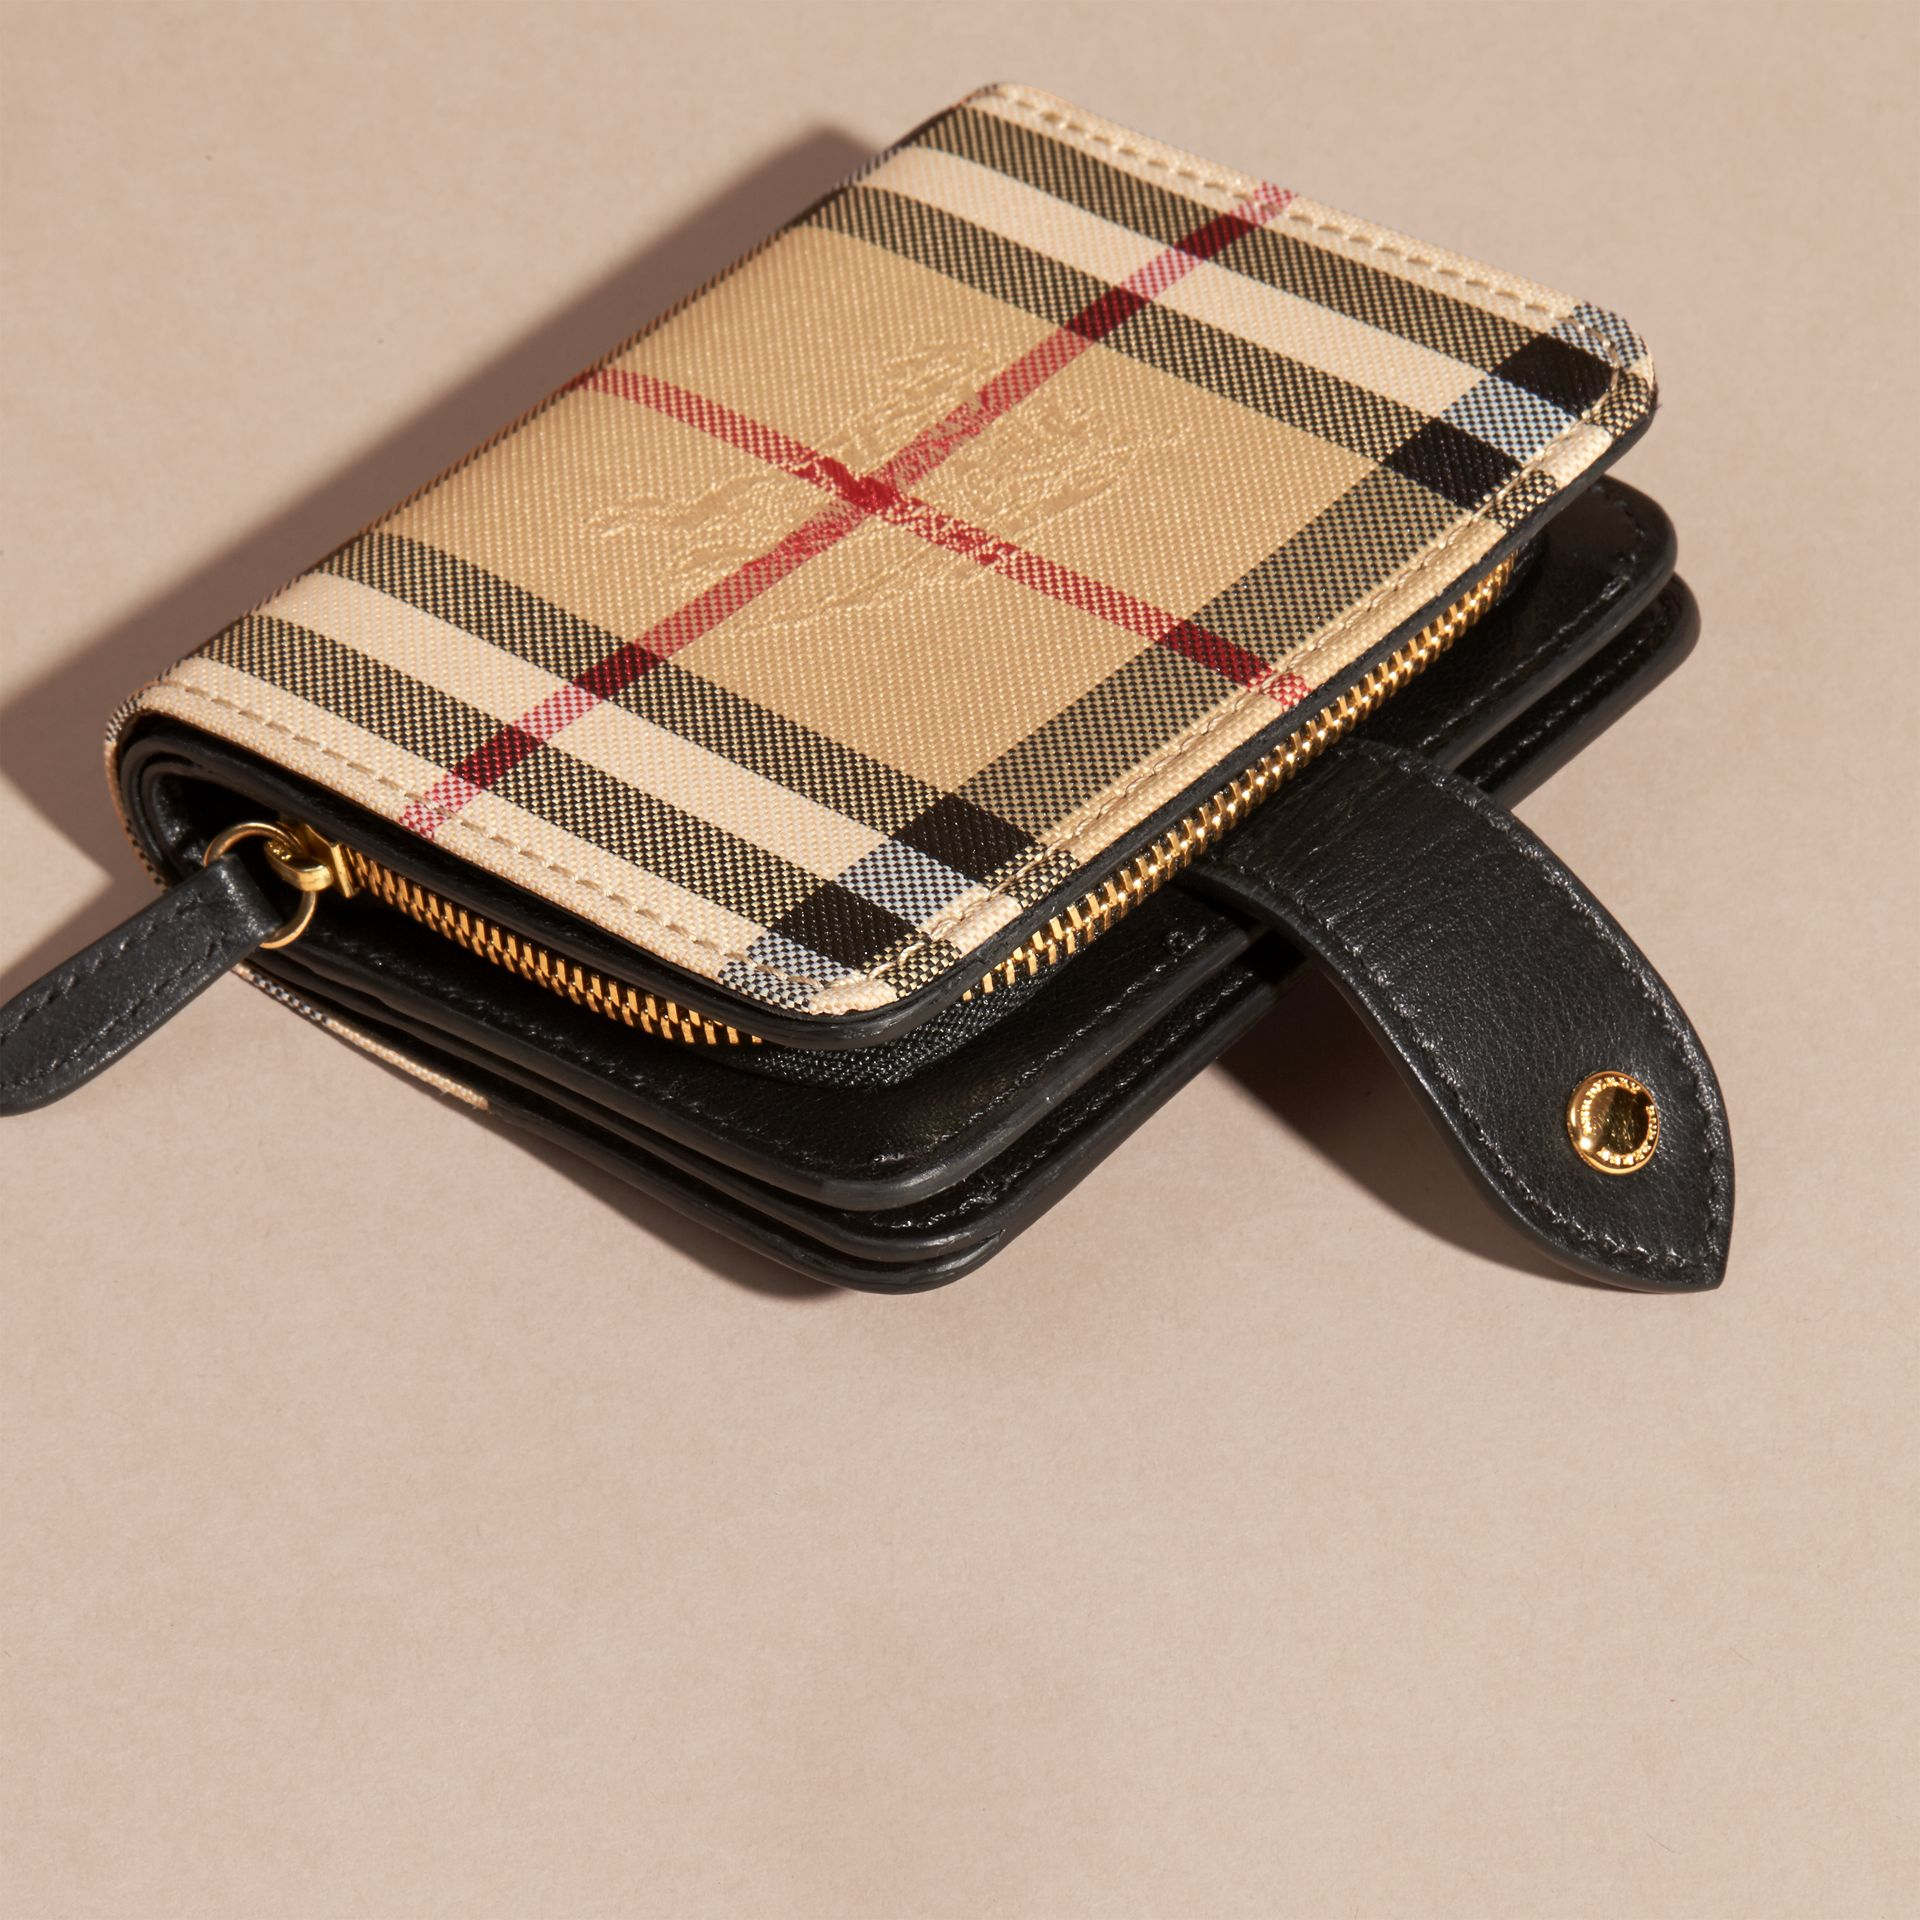 Black Horseferry Check and Leather Wallet Black - gallery image 4